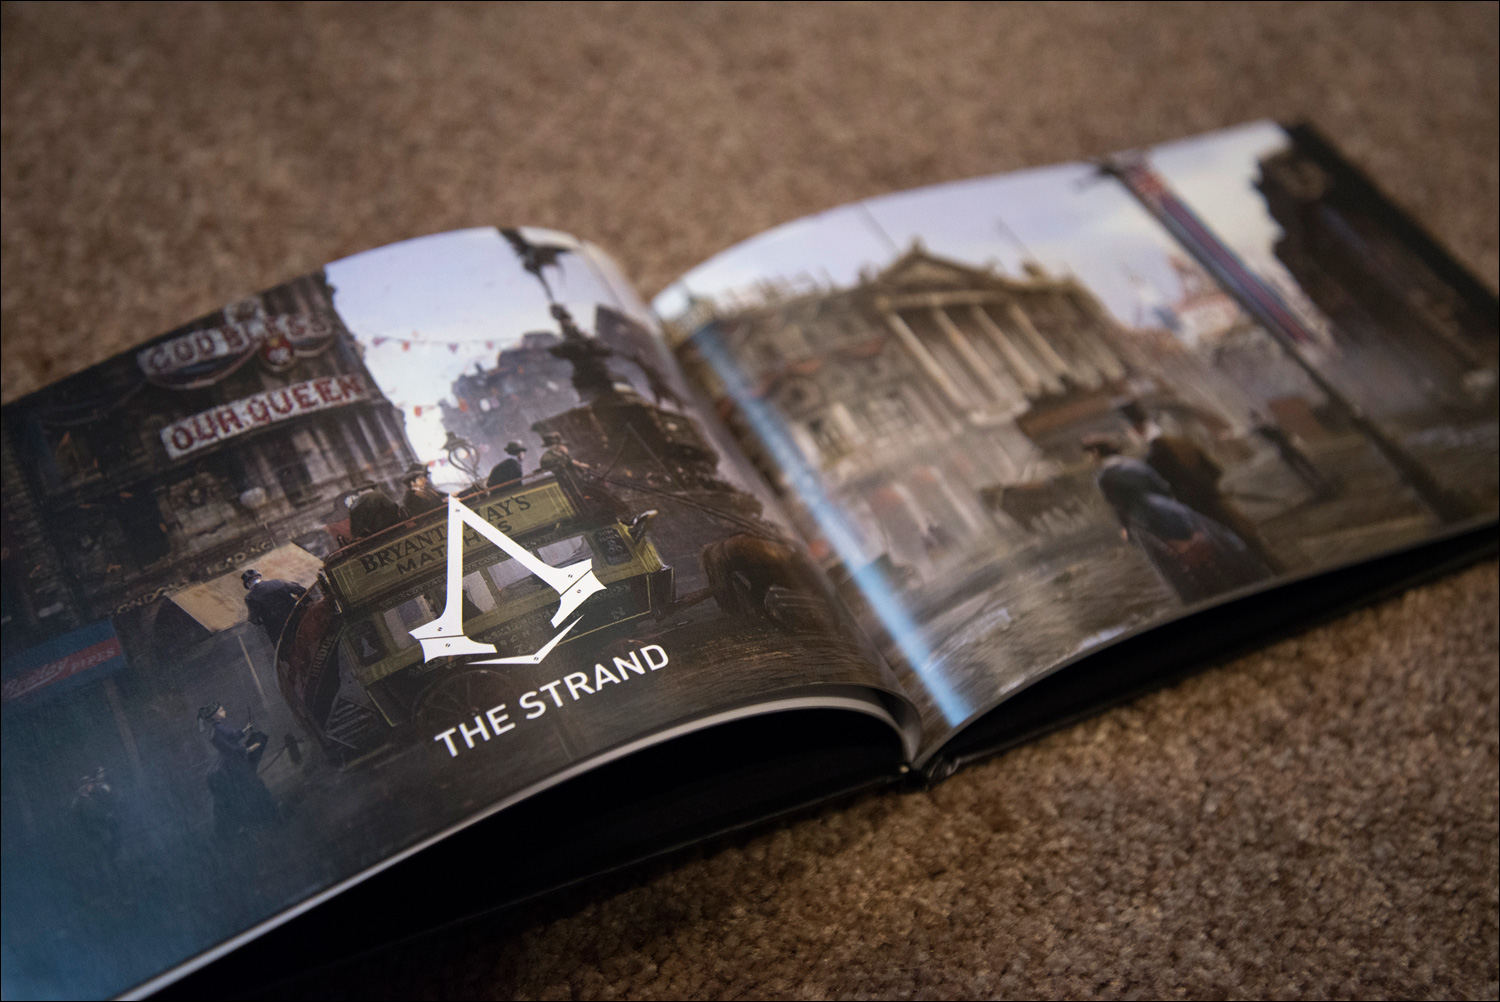 Assassins-Creed-Syndicate-Rooks-Edition-Artbook-The-Strand